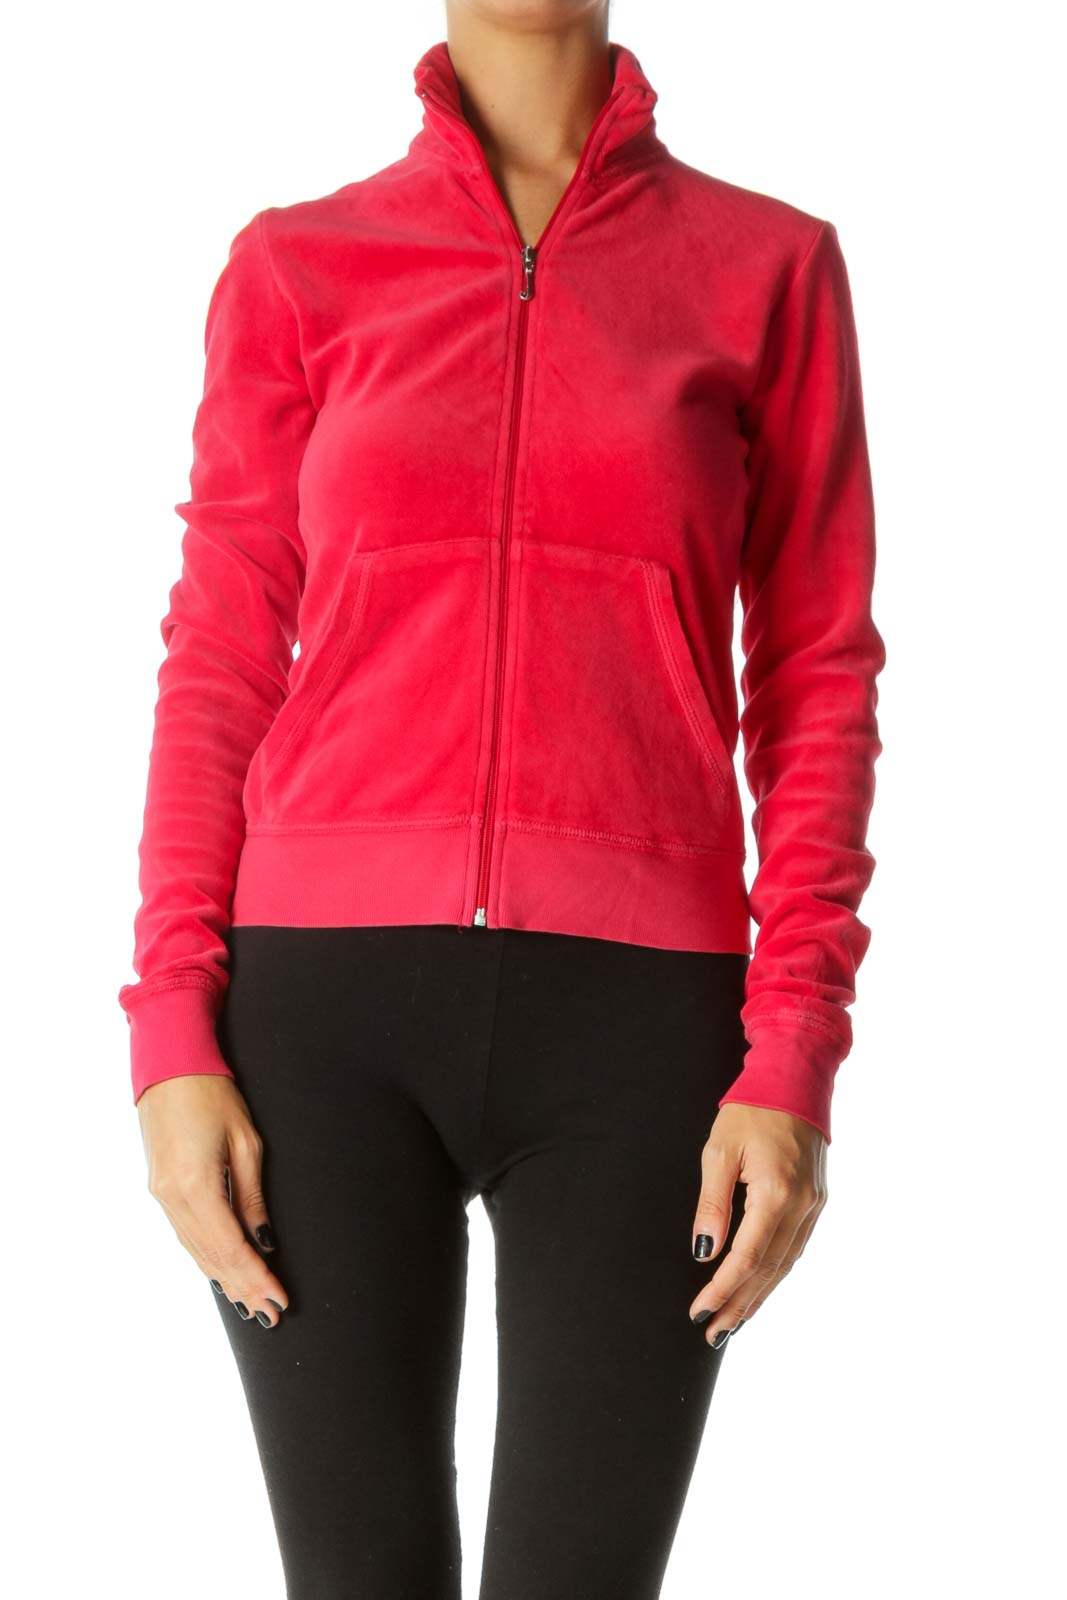 Red Stretch Long Sleeve Zippered Fitted Jacket